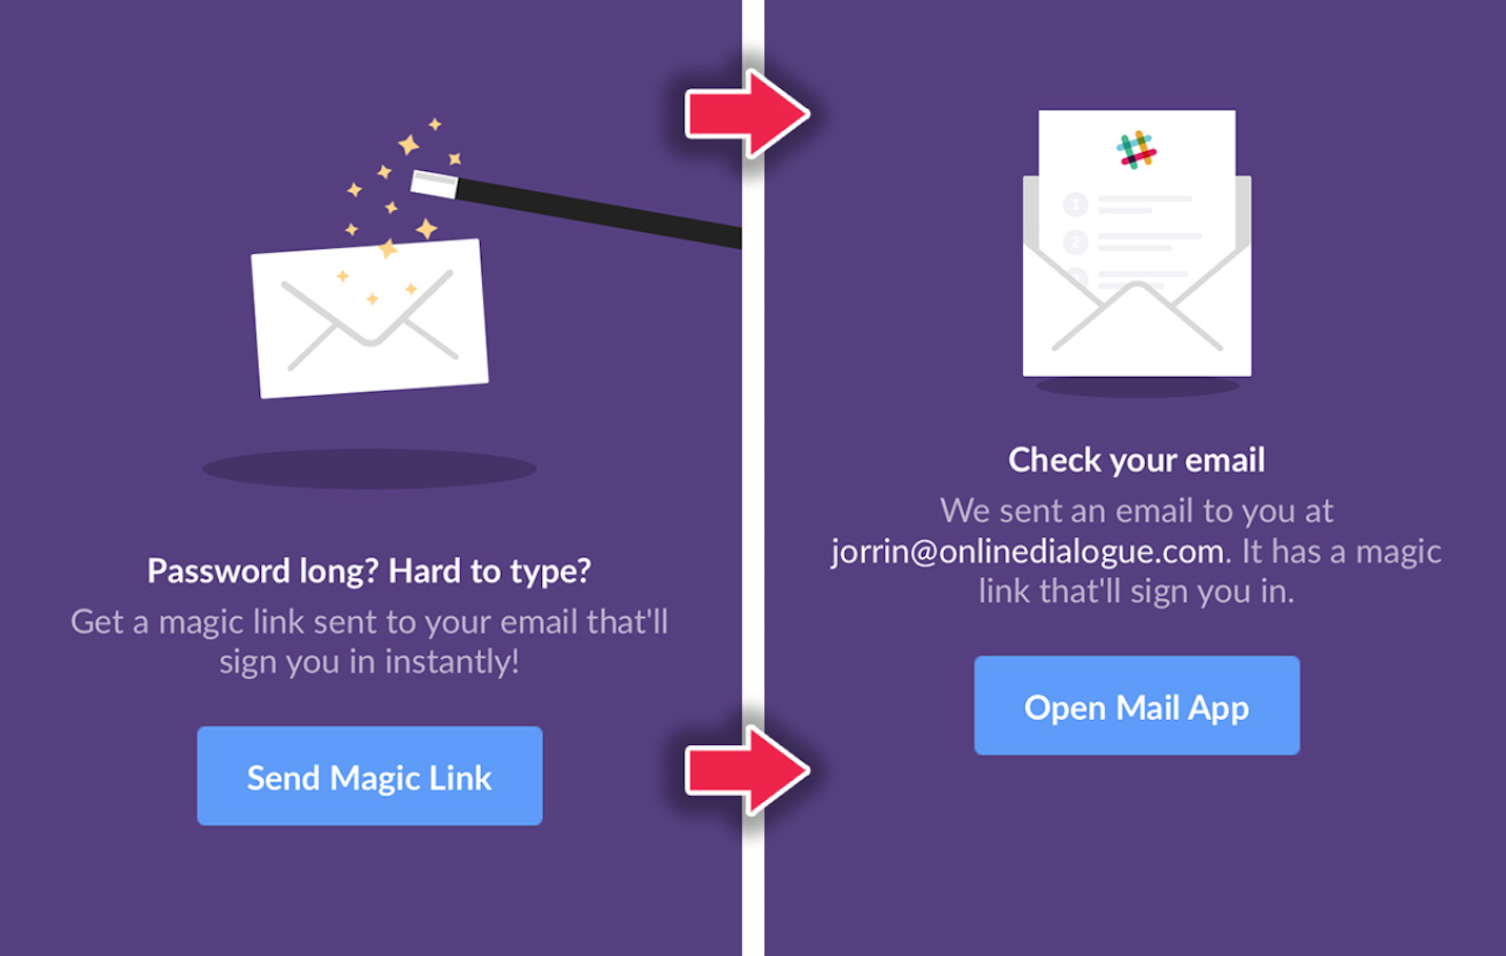 This Guide Reveals How To Build A Slack-Style 'Magic Link' Passwordless Login System